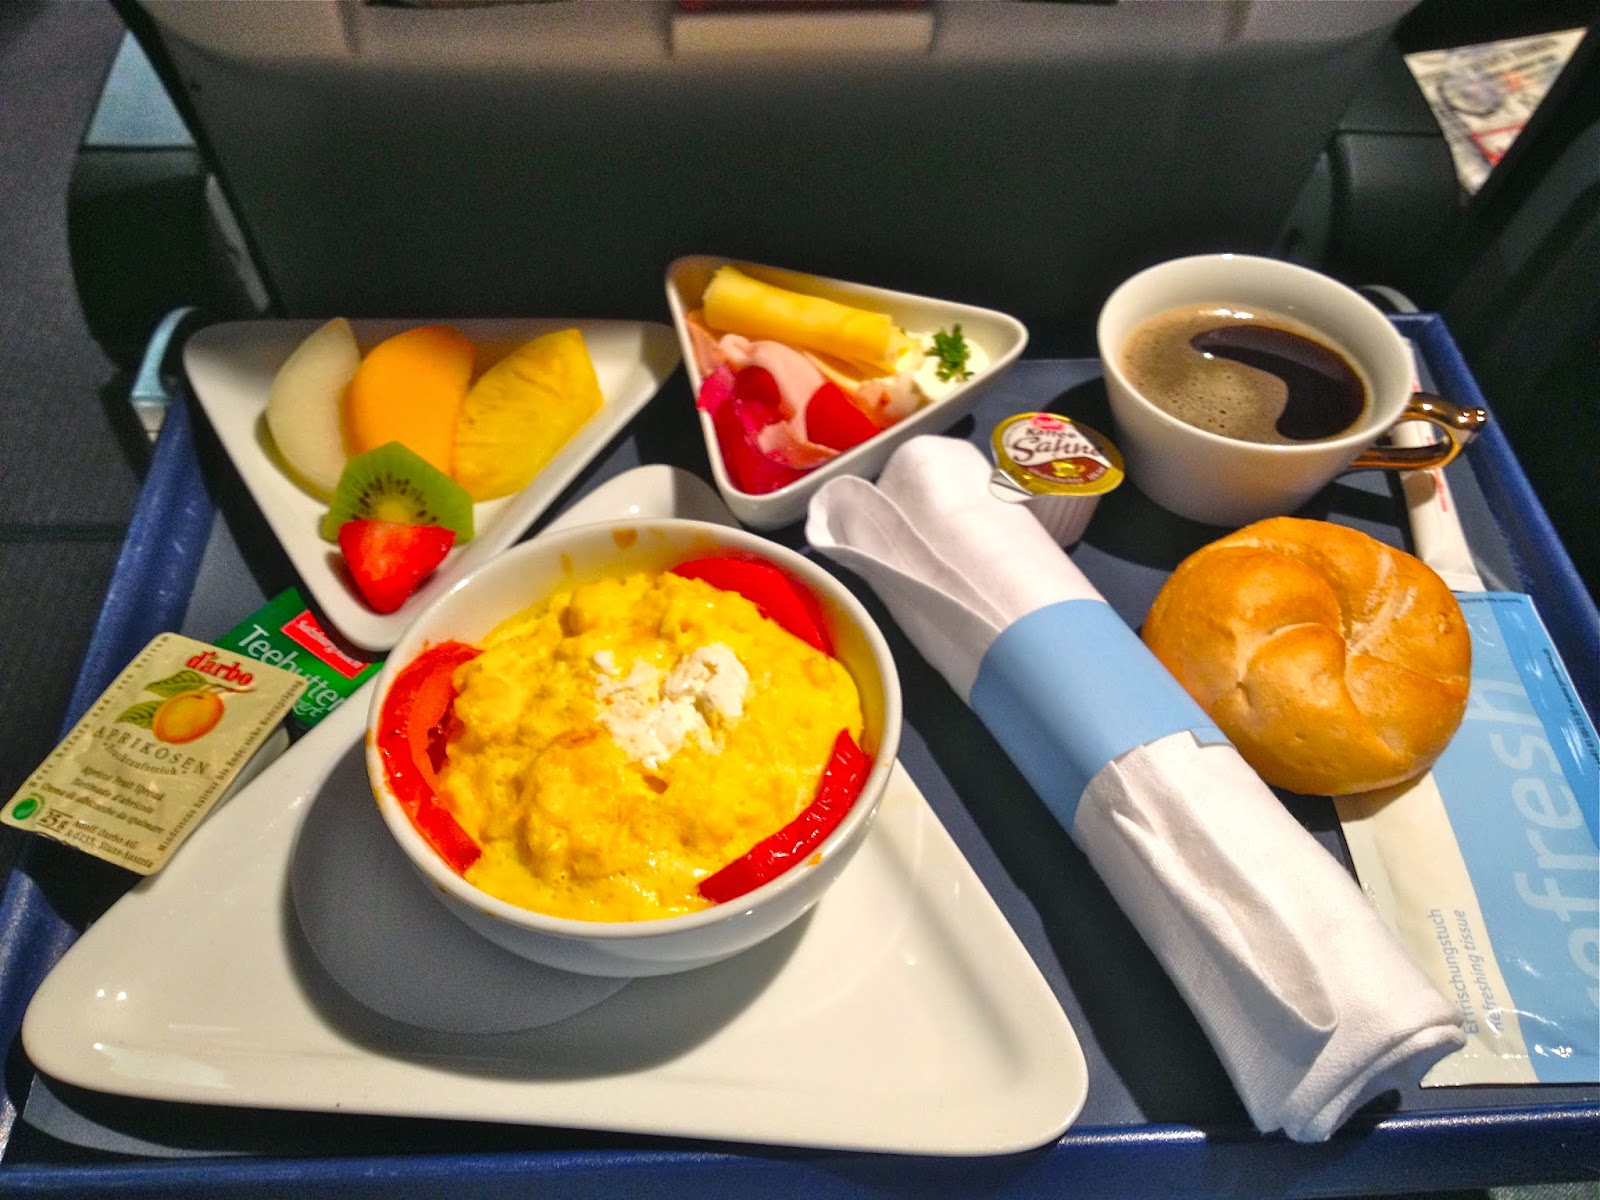 Picture of Austrian Airlines business class food.